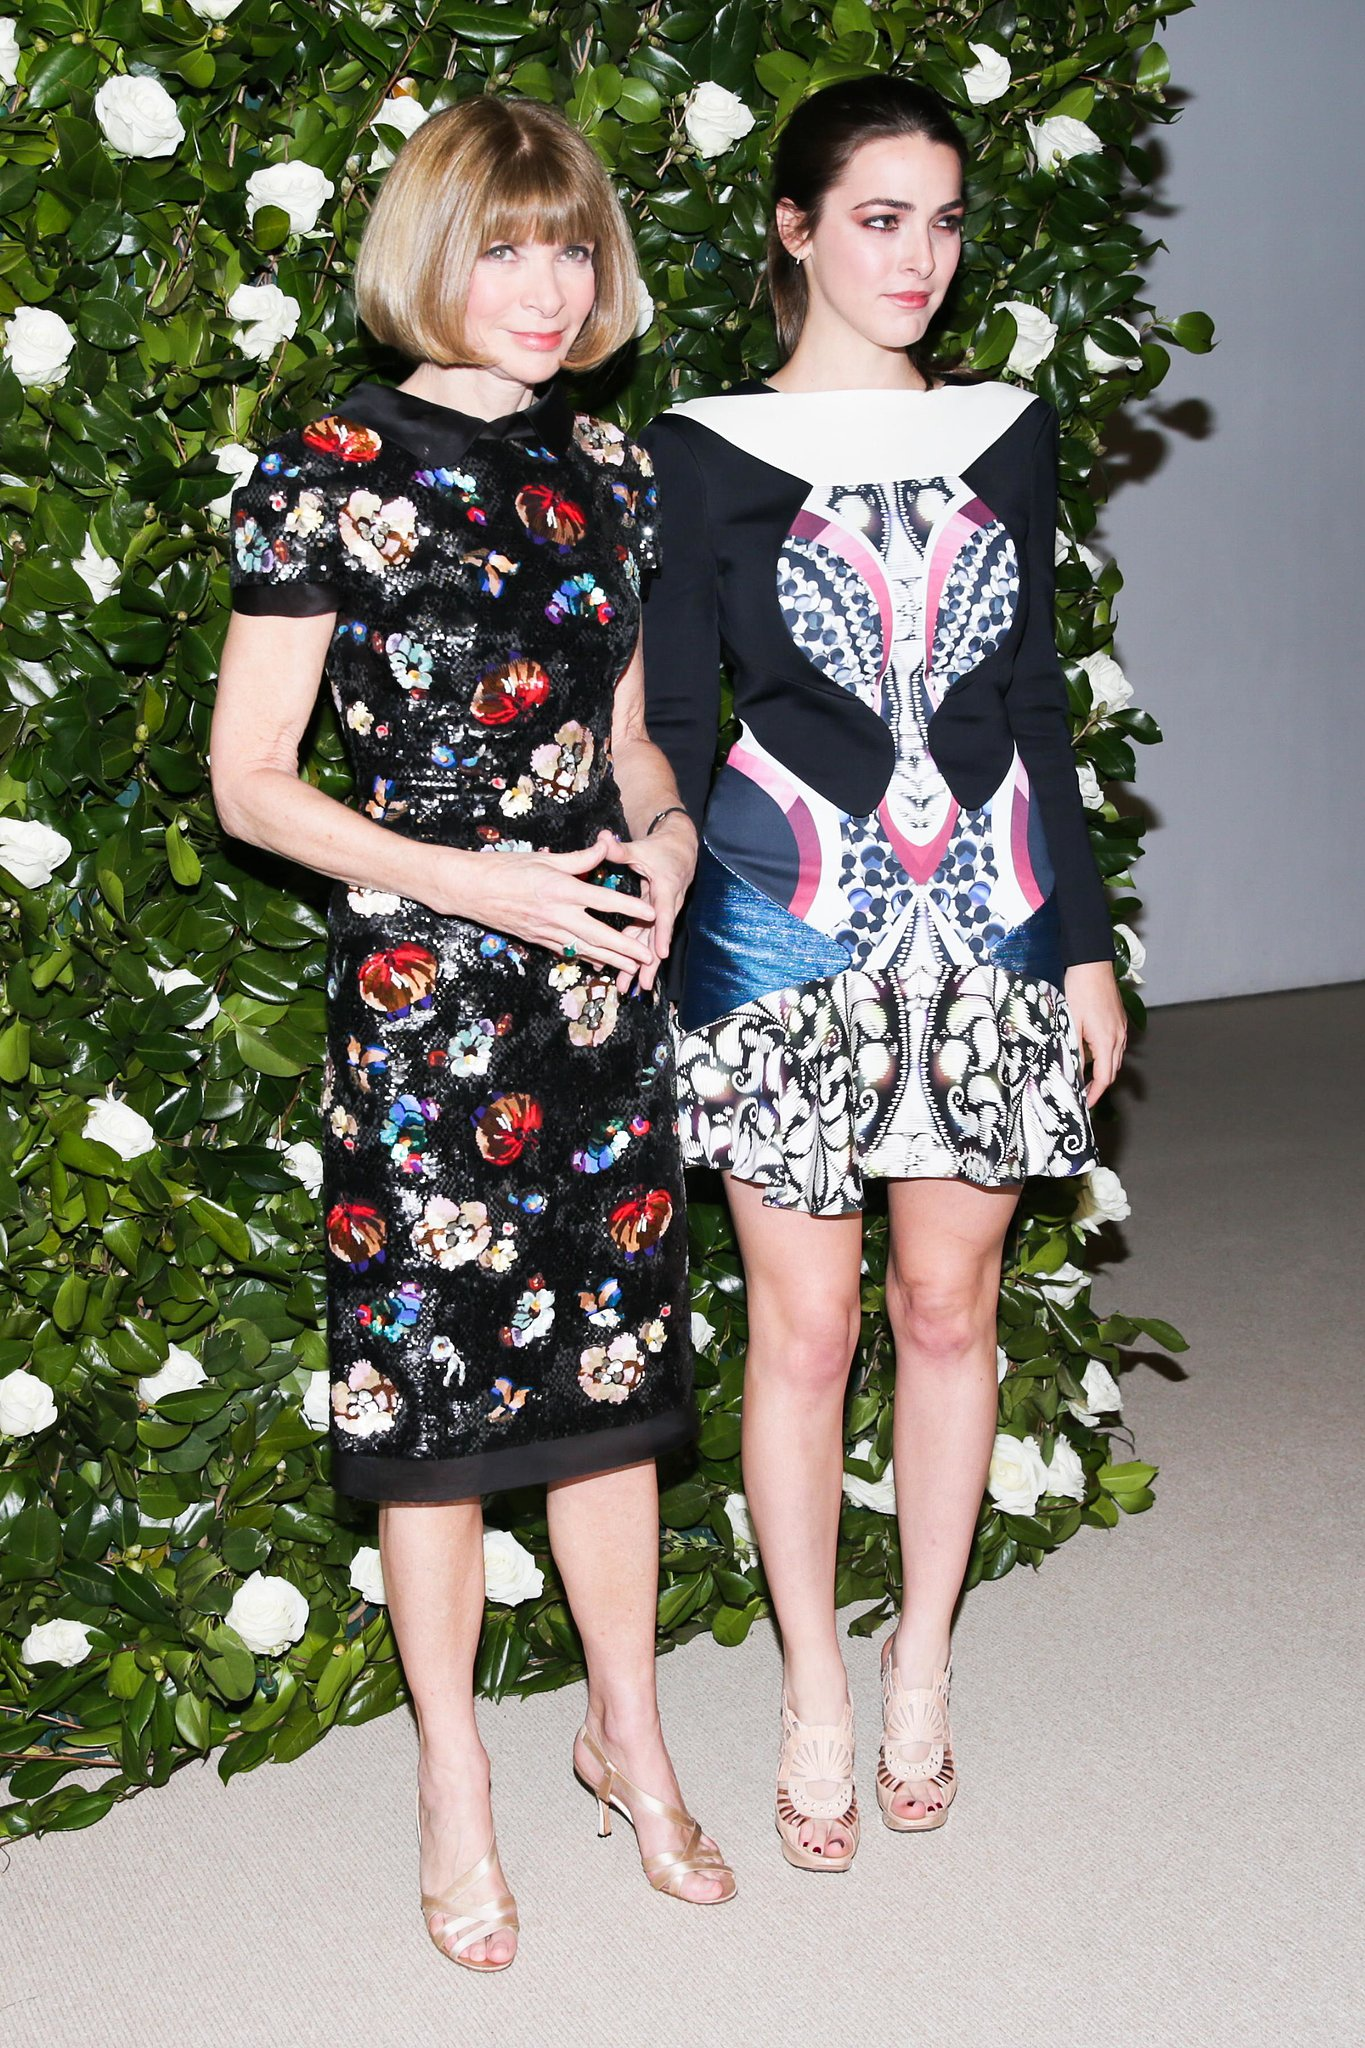 Anna Wintour and Bee Shaffer were print-perfect while walking the carpet for the MoMA Film Benefit presented by Chanel.